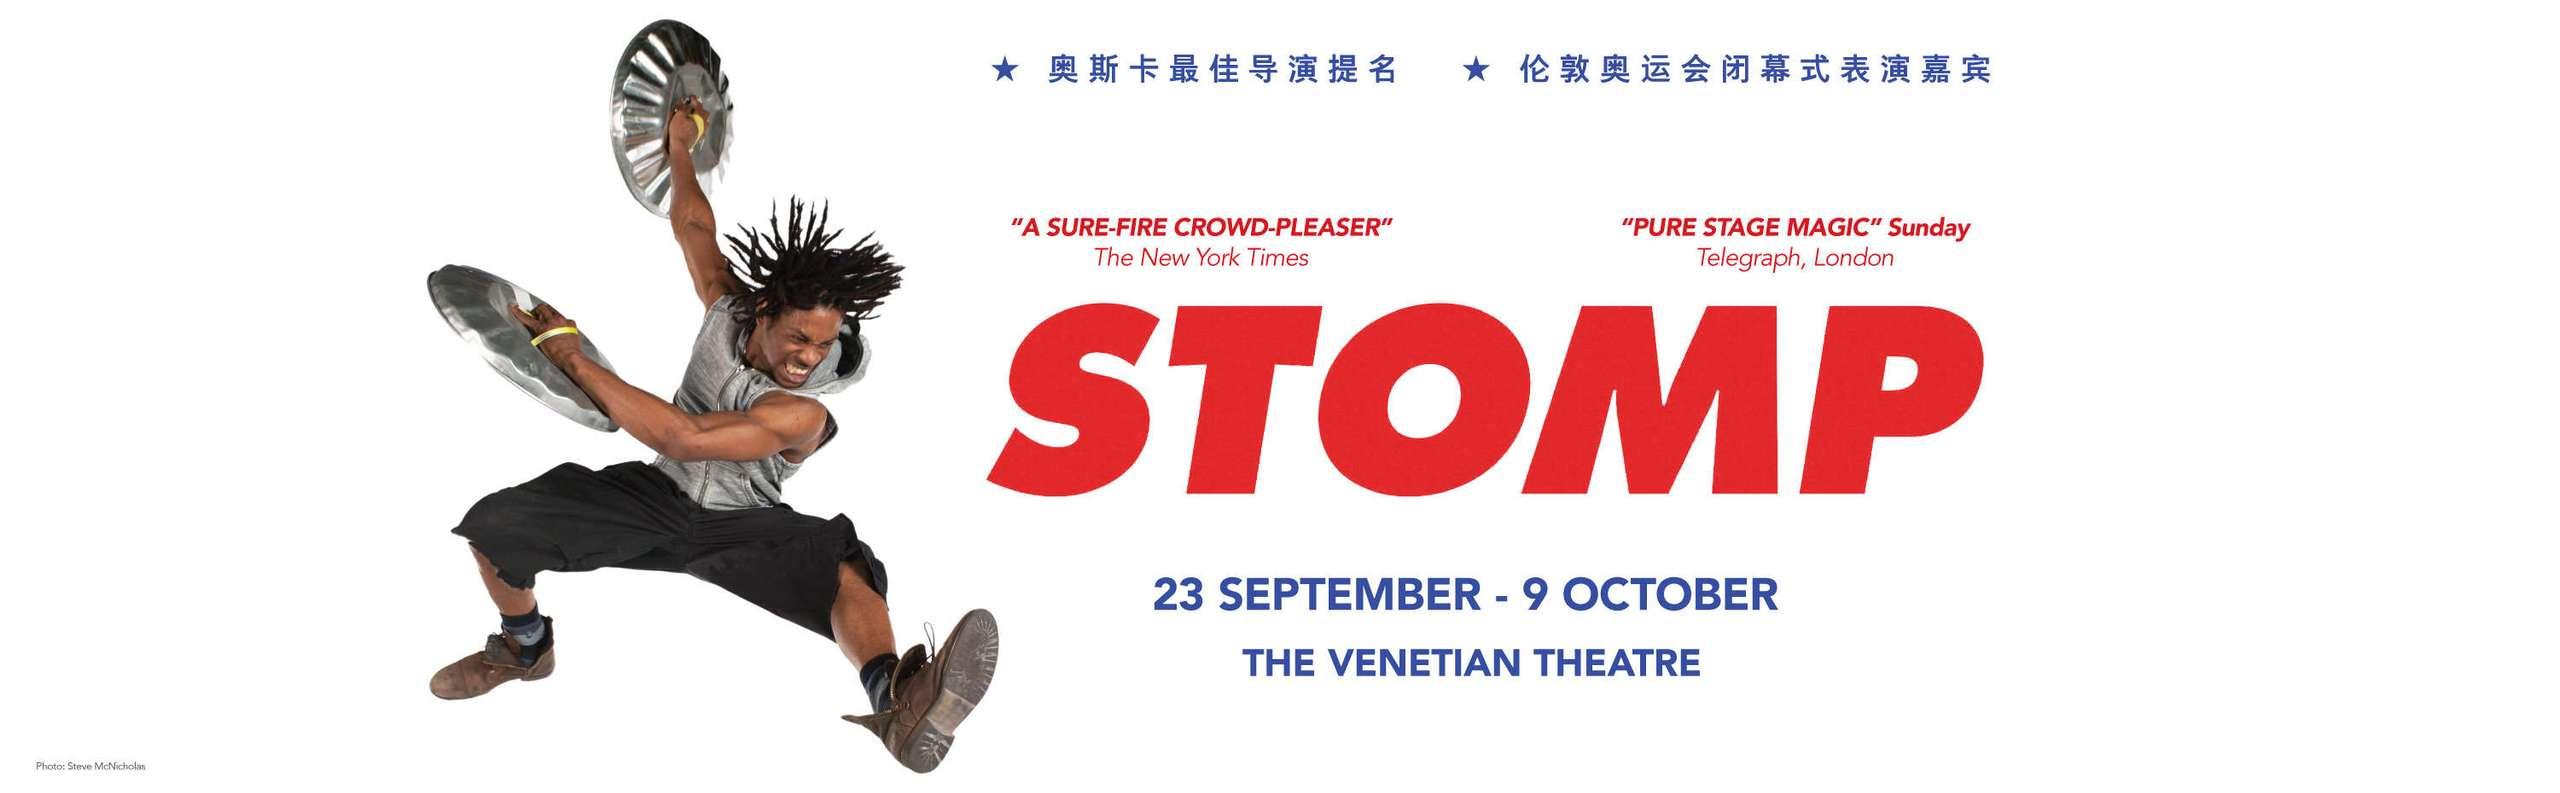 Stomp at The Venetian Theatre Macau